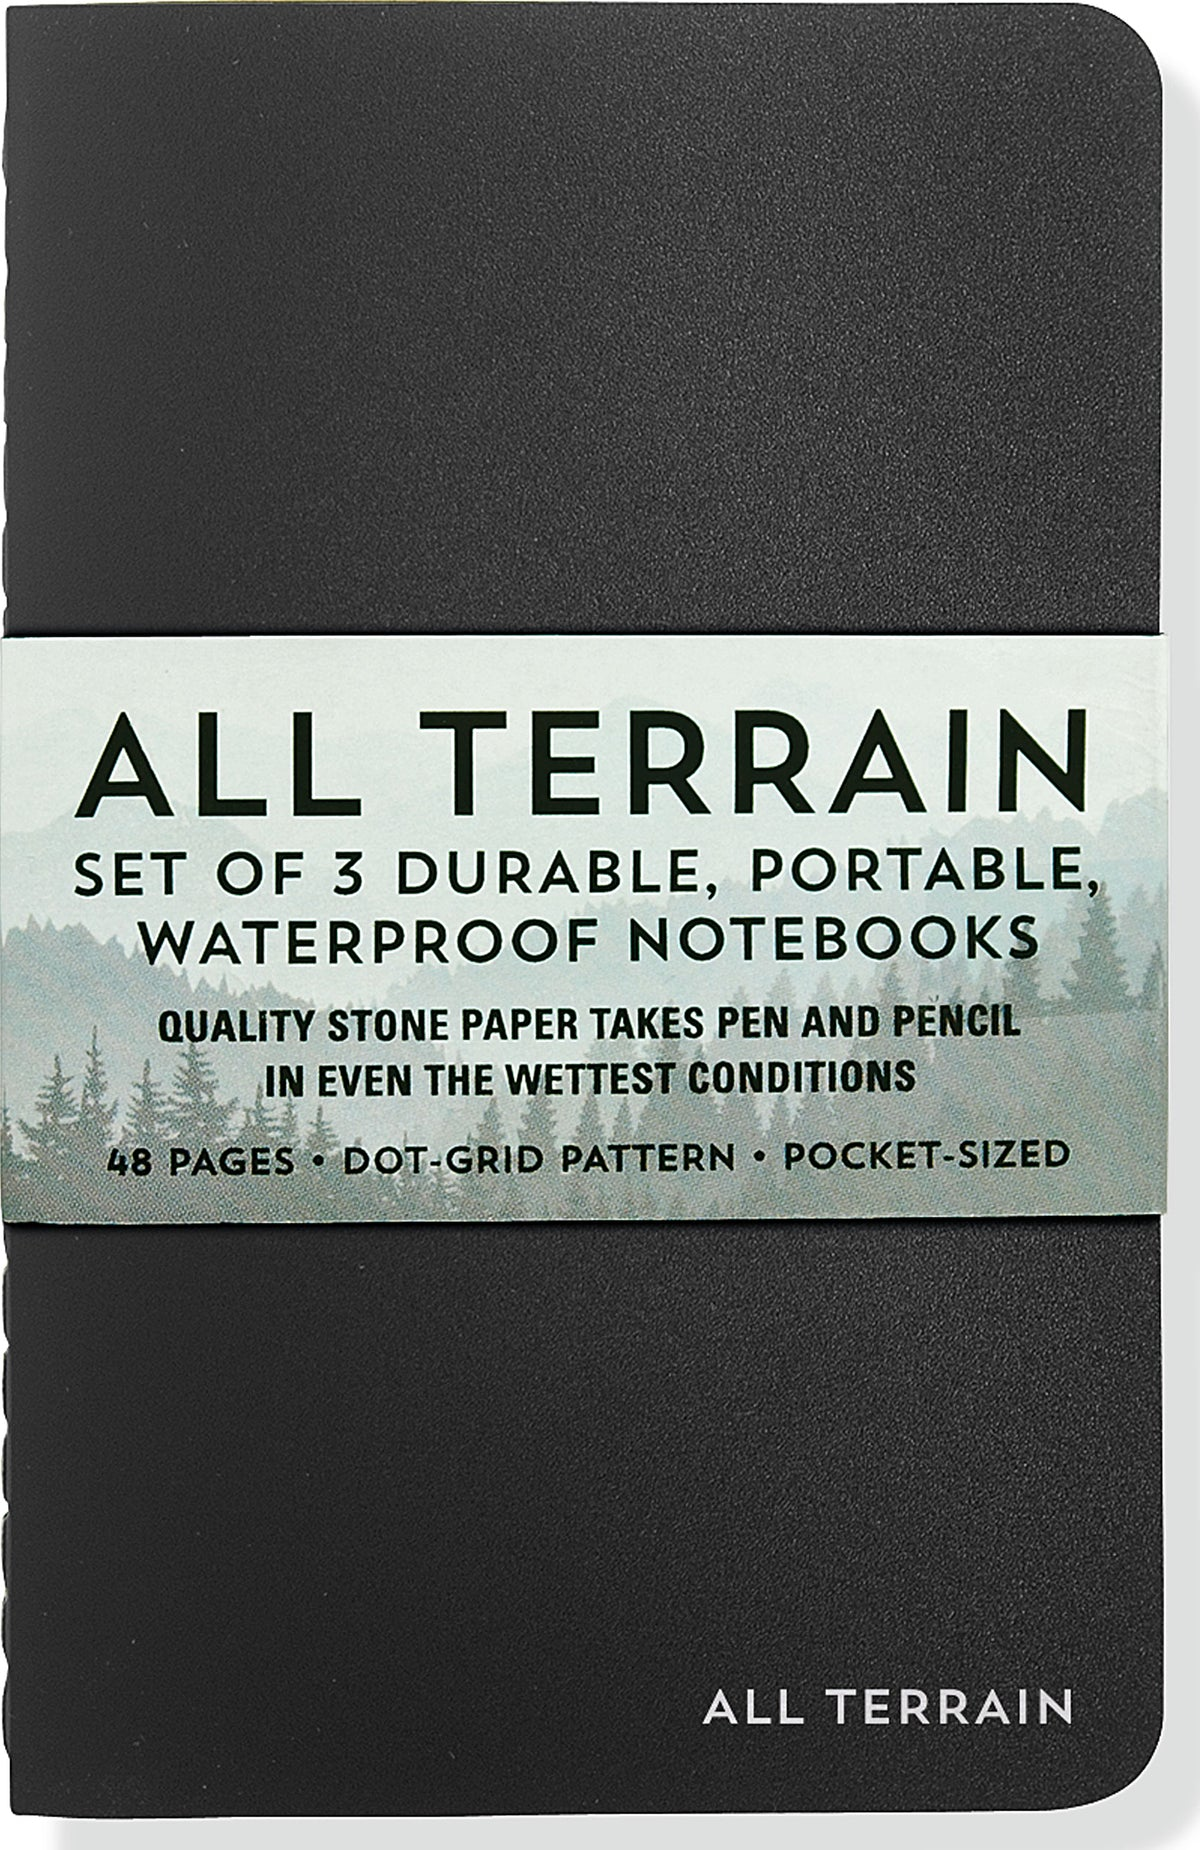 All Terrain: The Waterproof Notebook